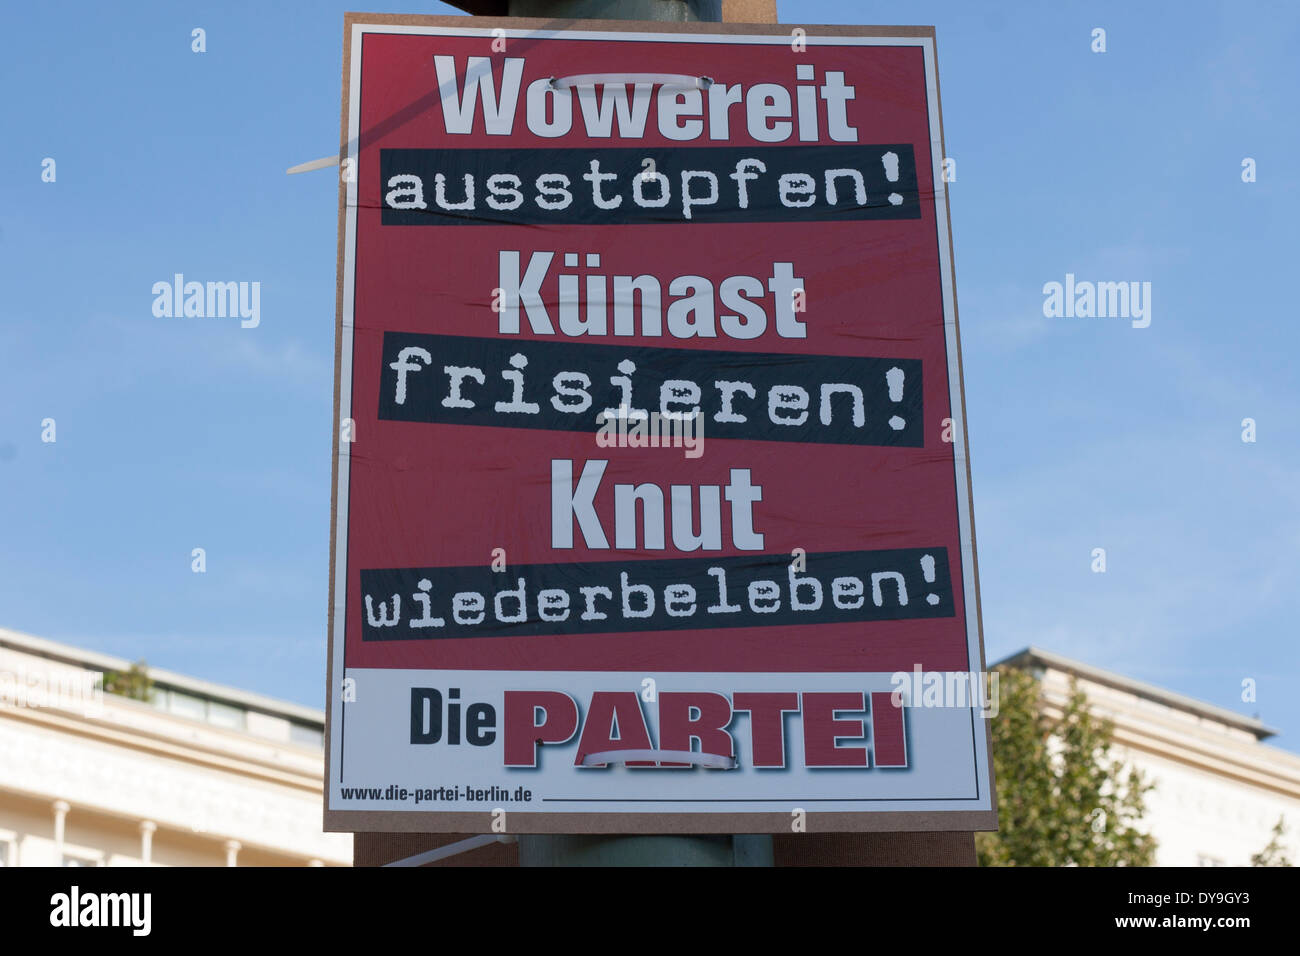 Election poster (Die Partei) in Berlin, Germany. Stock Photo